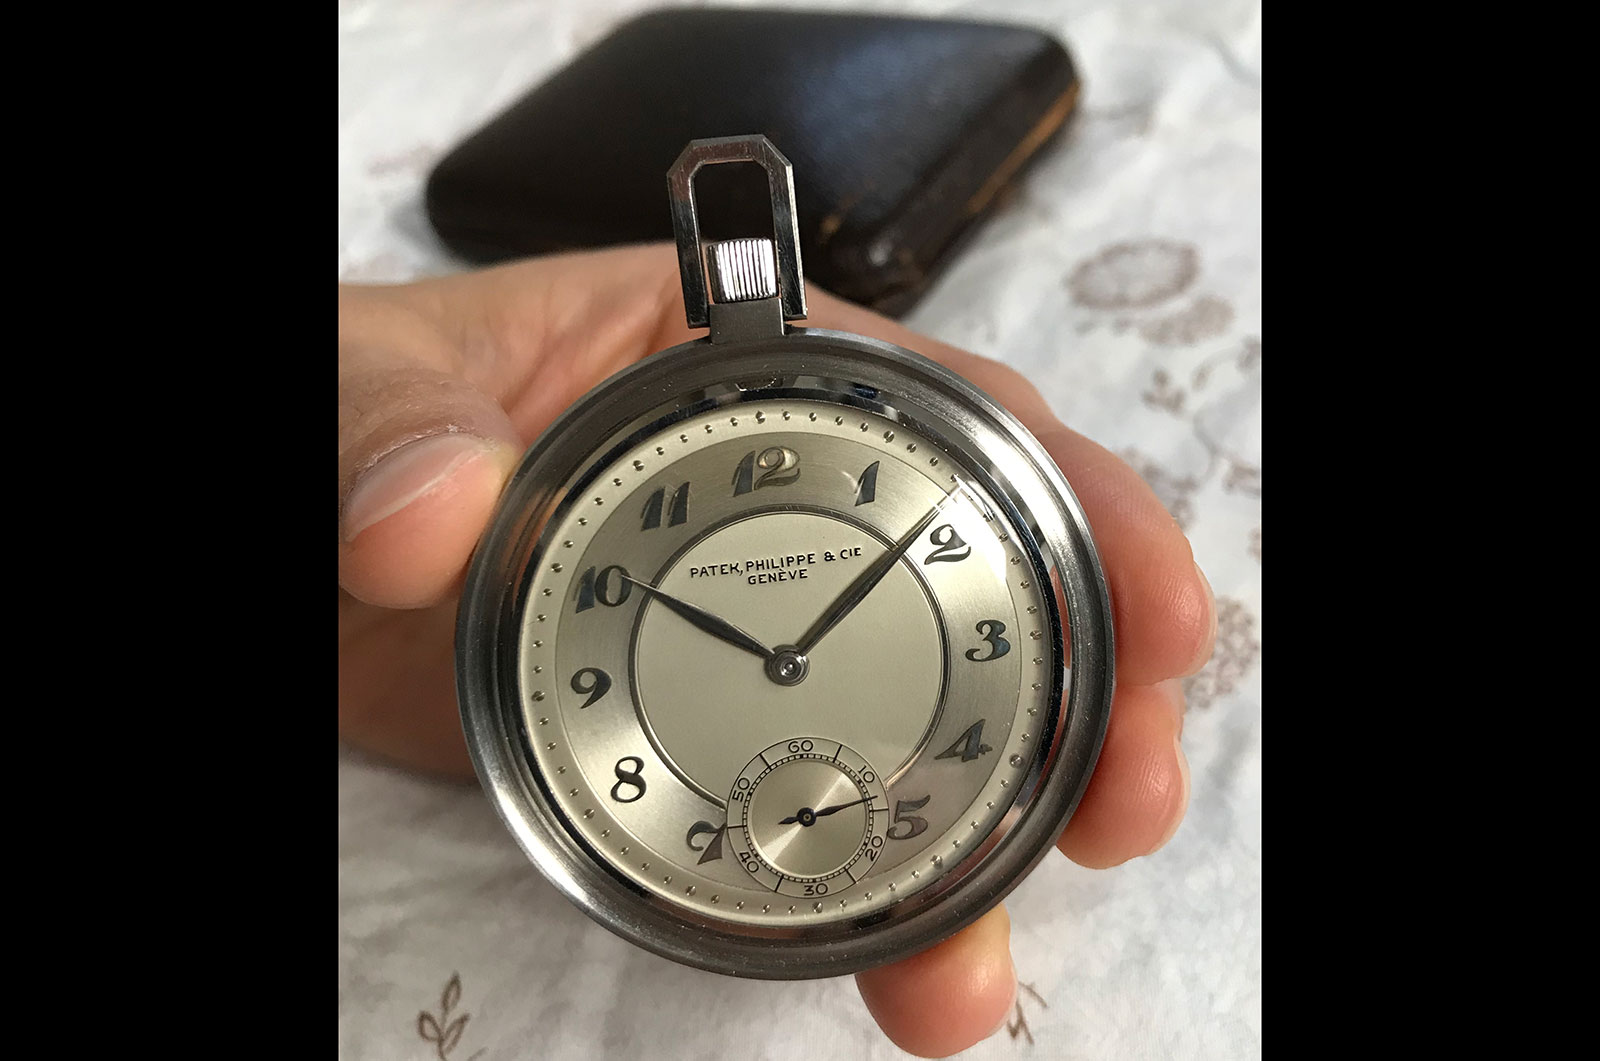 Patek philippe pocket watch 686 steel breguet numbers